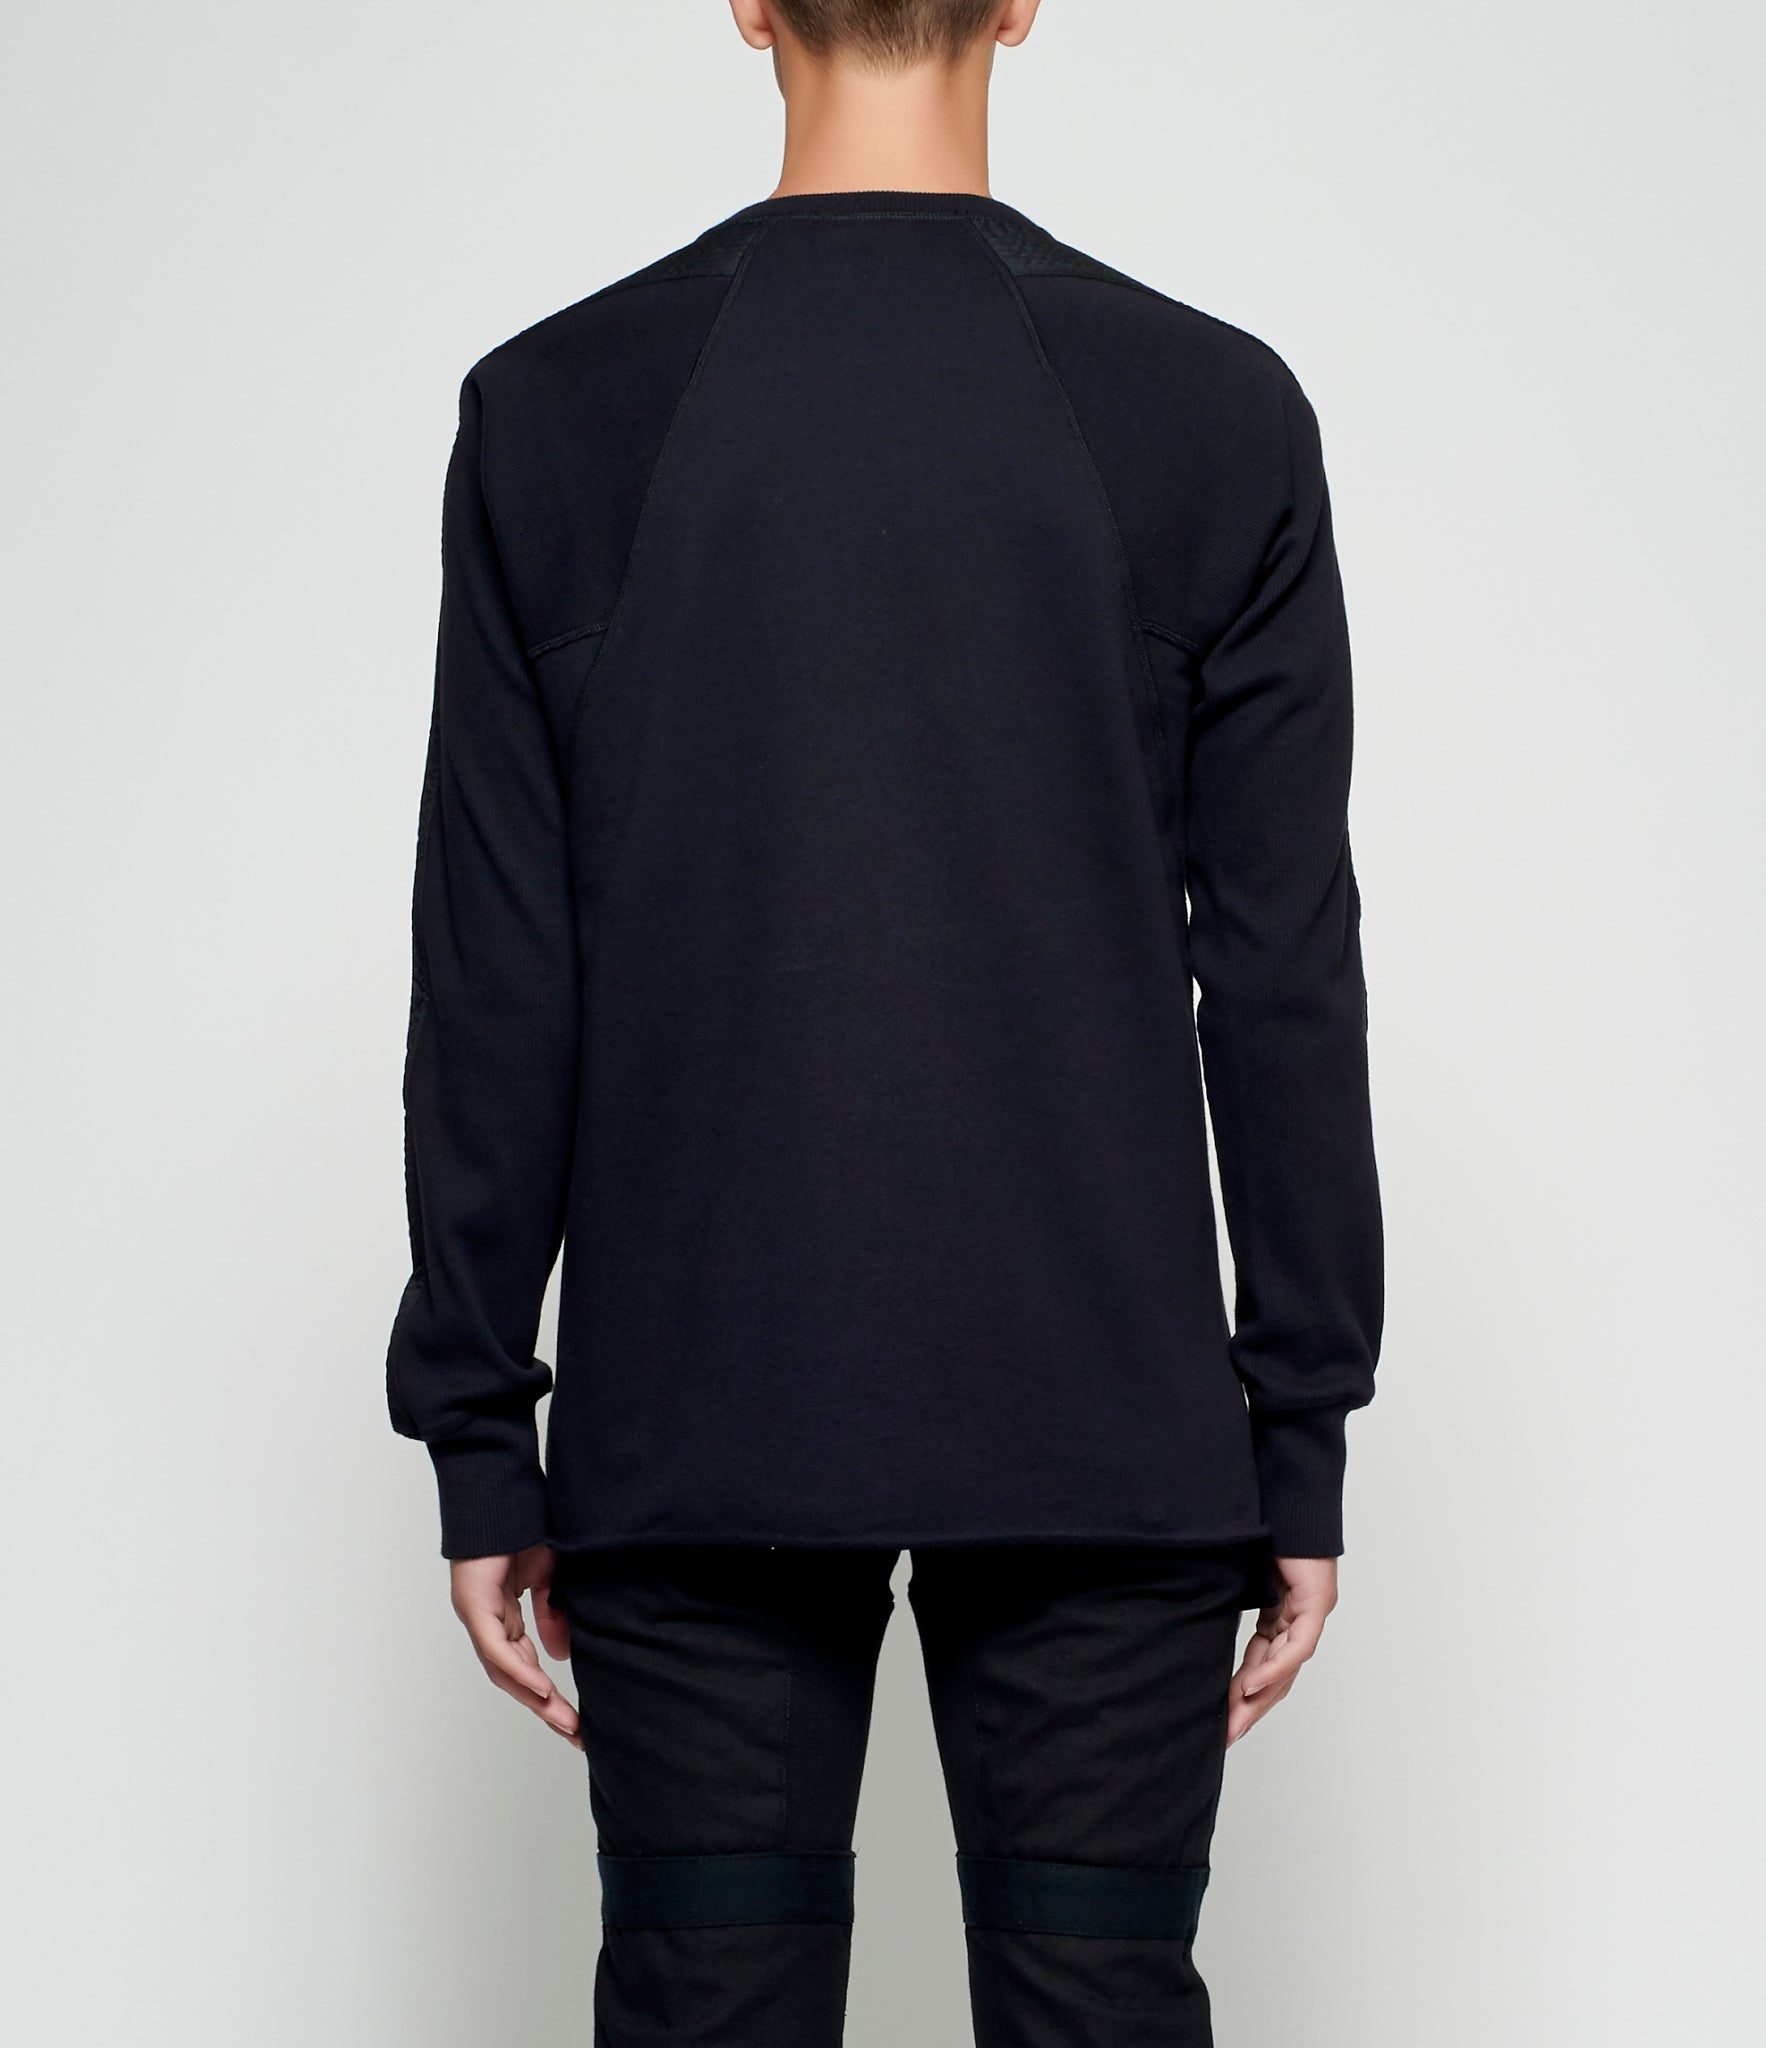 Abasi Rosborough Arc Sweatshirt